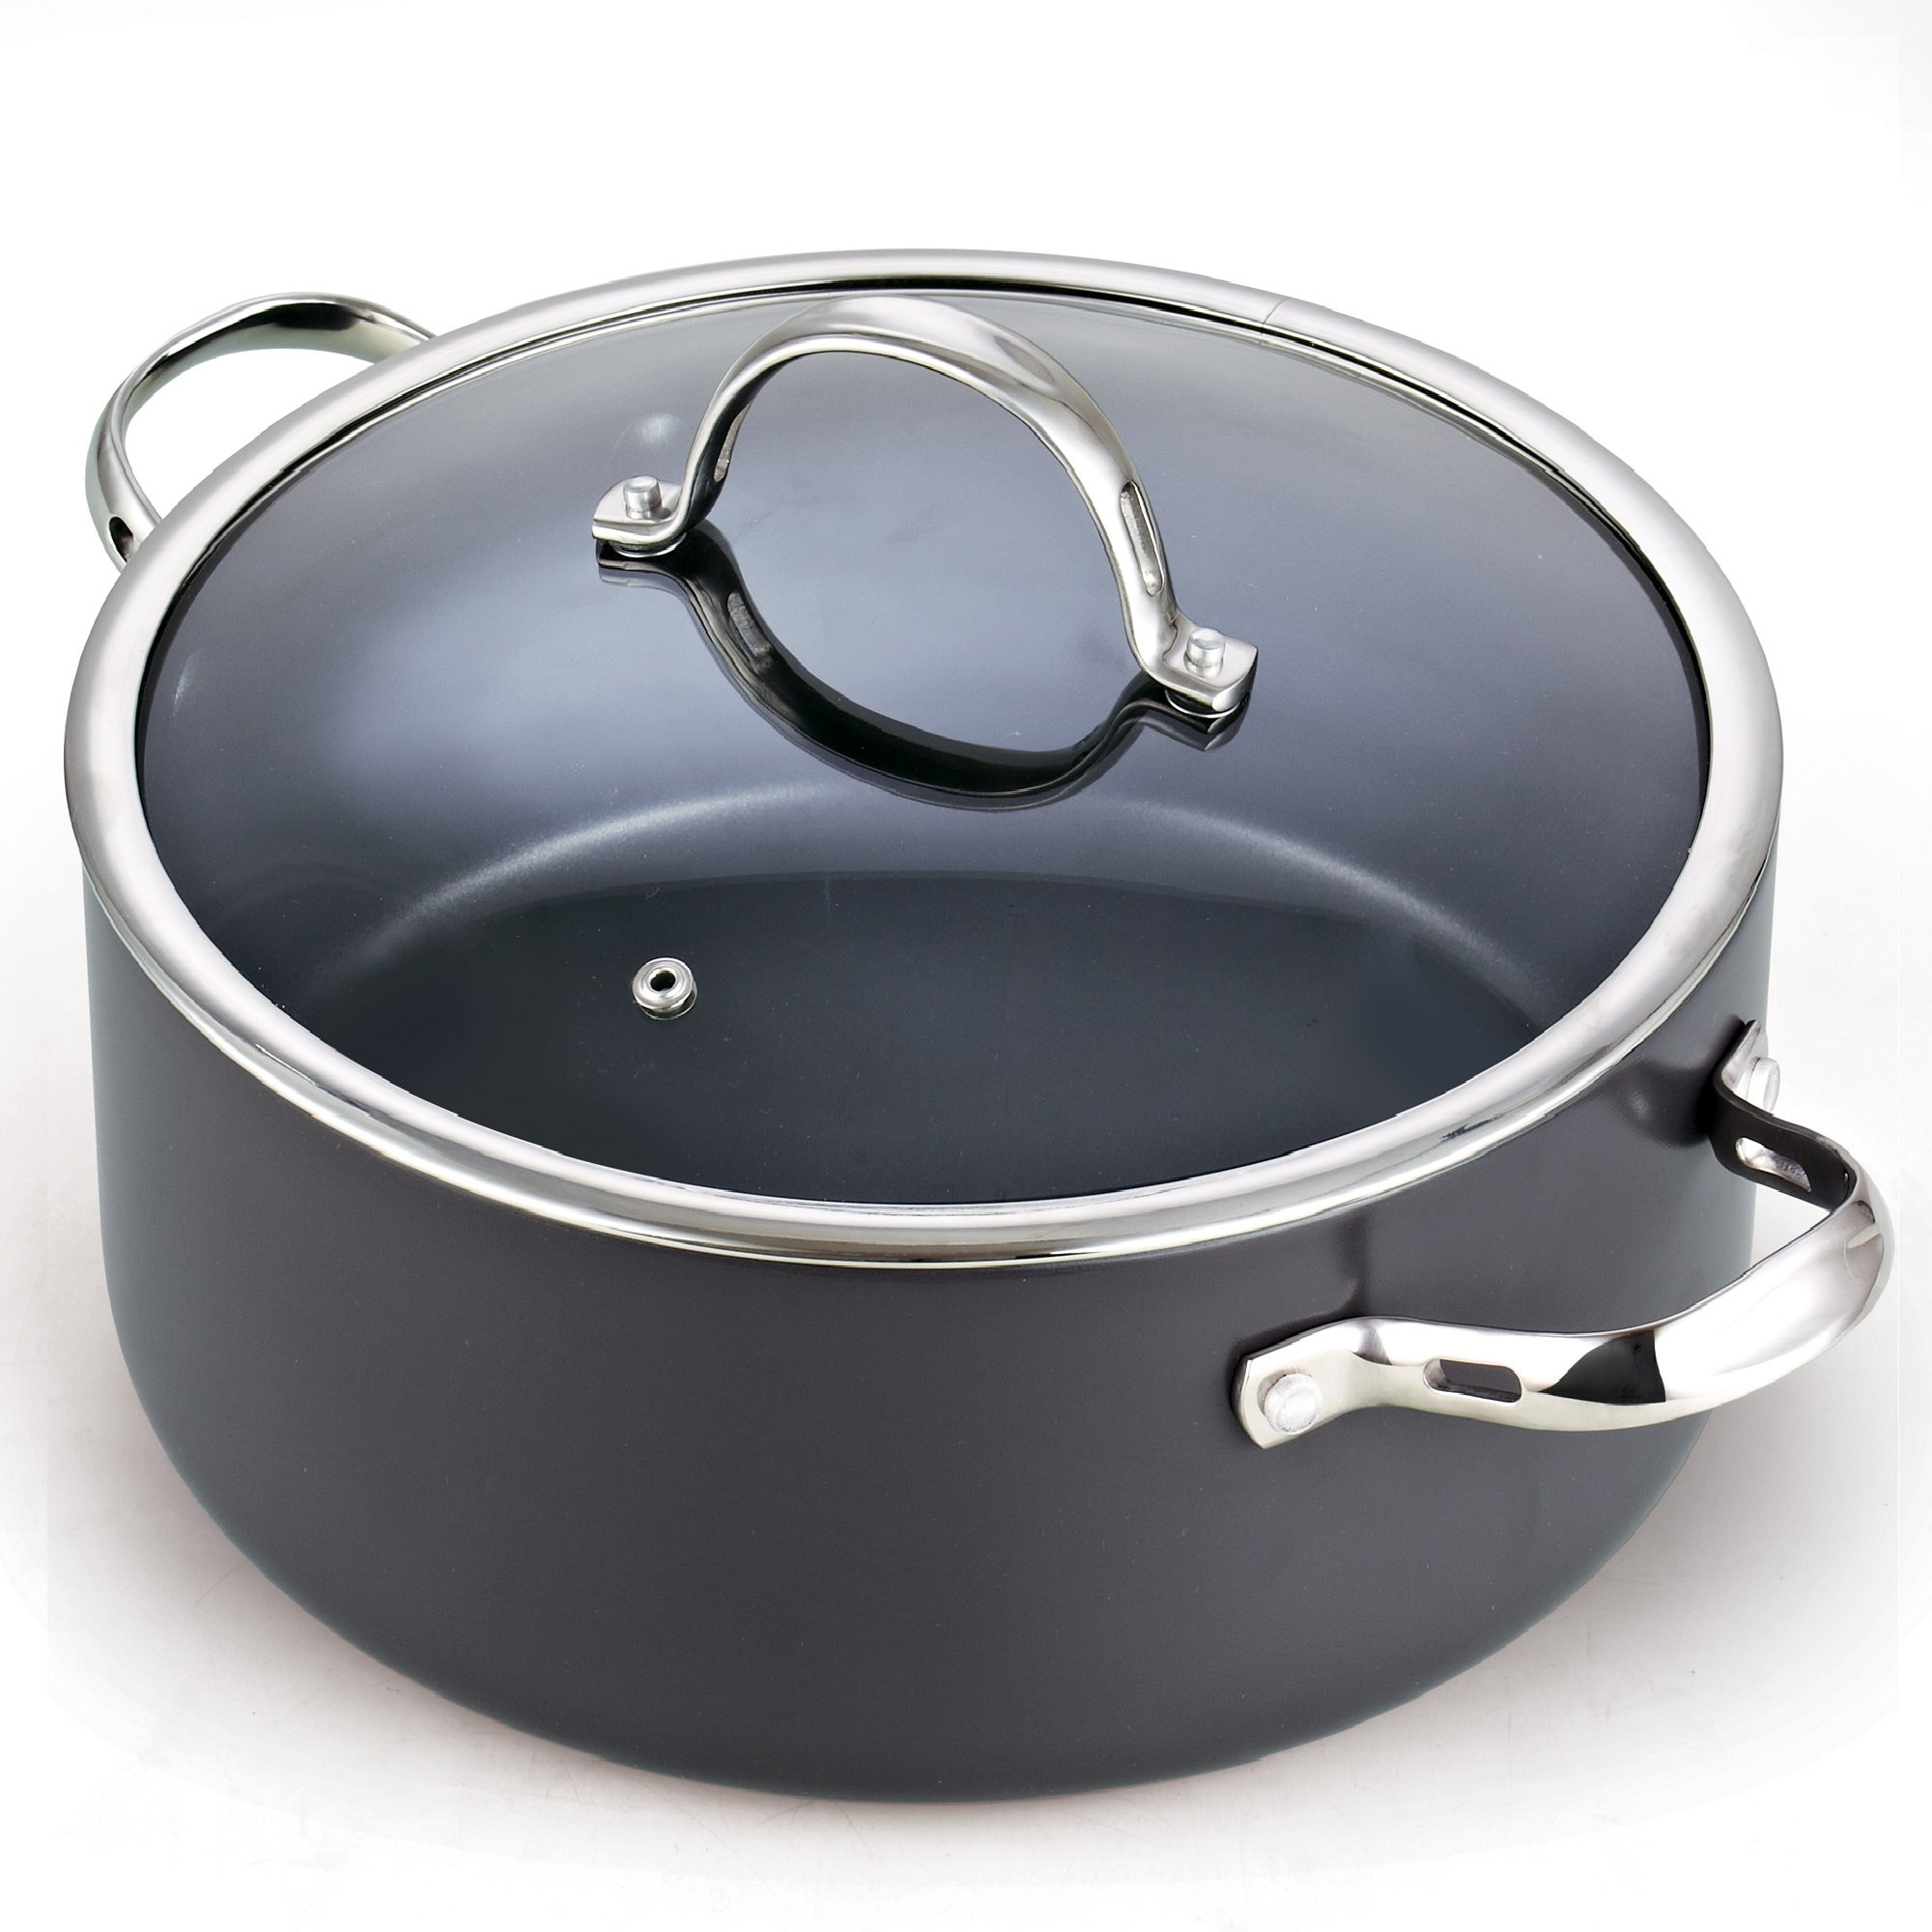 Cooks Standard 7 Quart Hard Anodized Nonstick Dutch Oven Casserole Stockpot with Lid